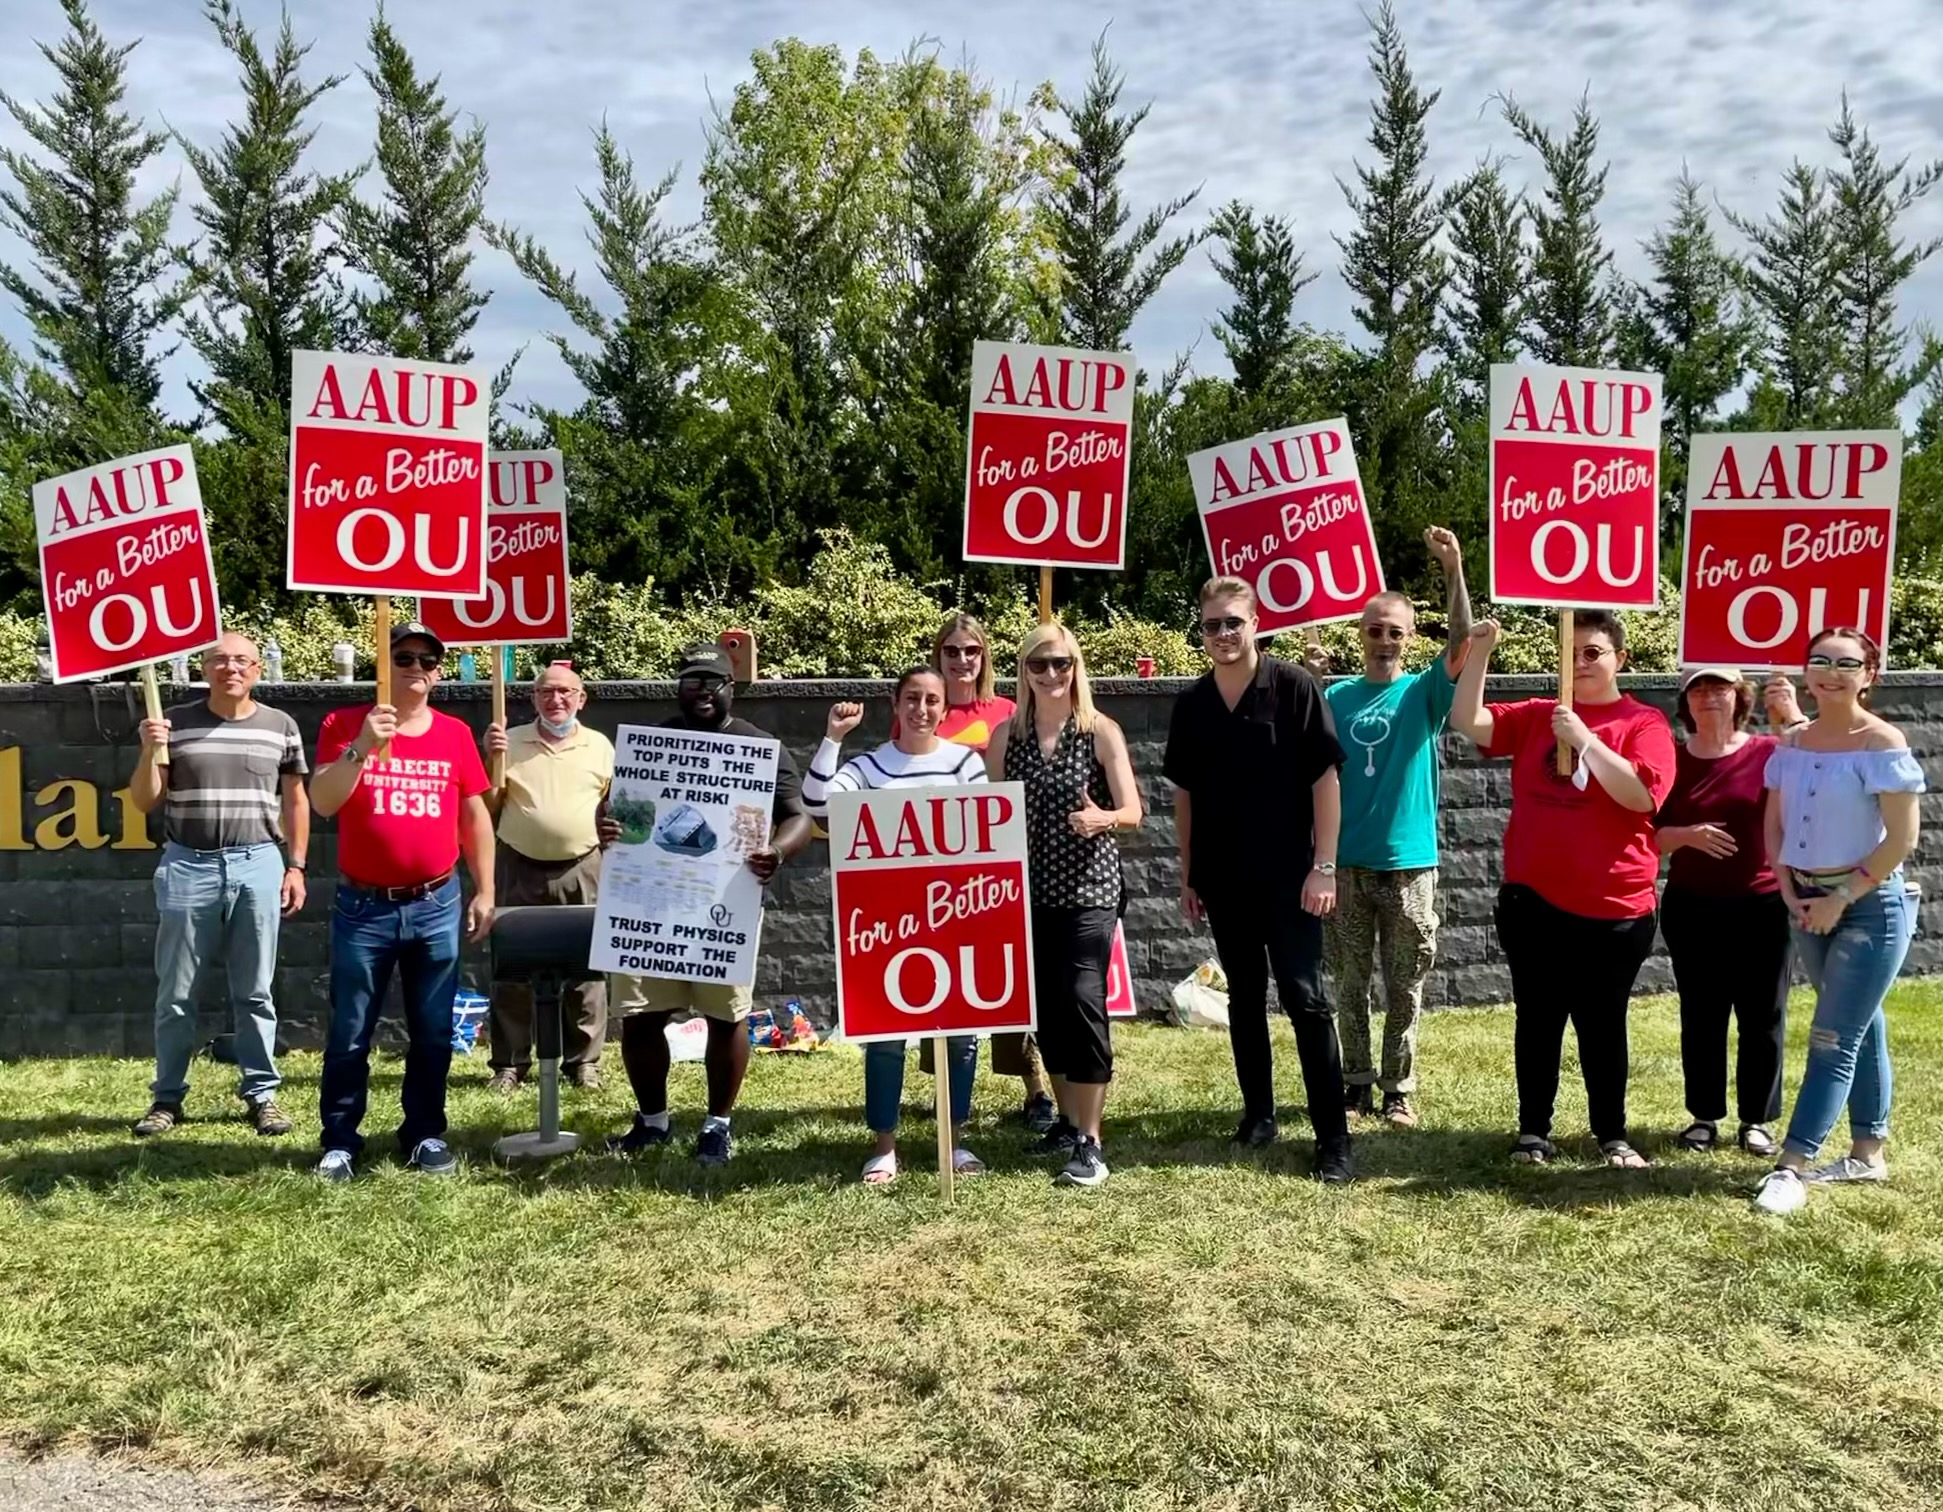 A picture of Rep. Mari Manoogian (center) on the picket line with members of AAUP's Oakland University Chapter, Sept. 3, 2021.